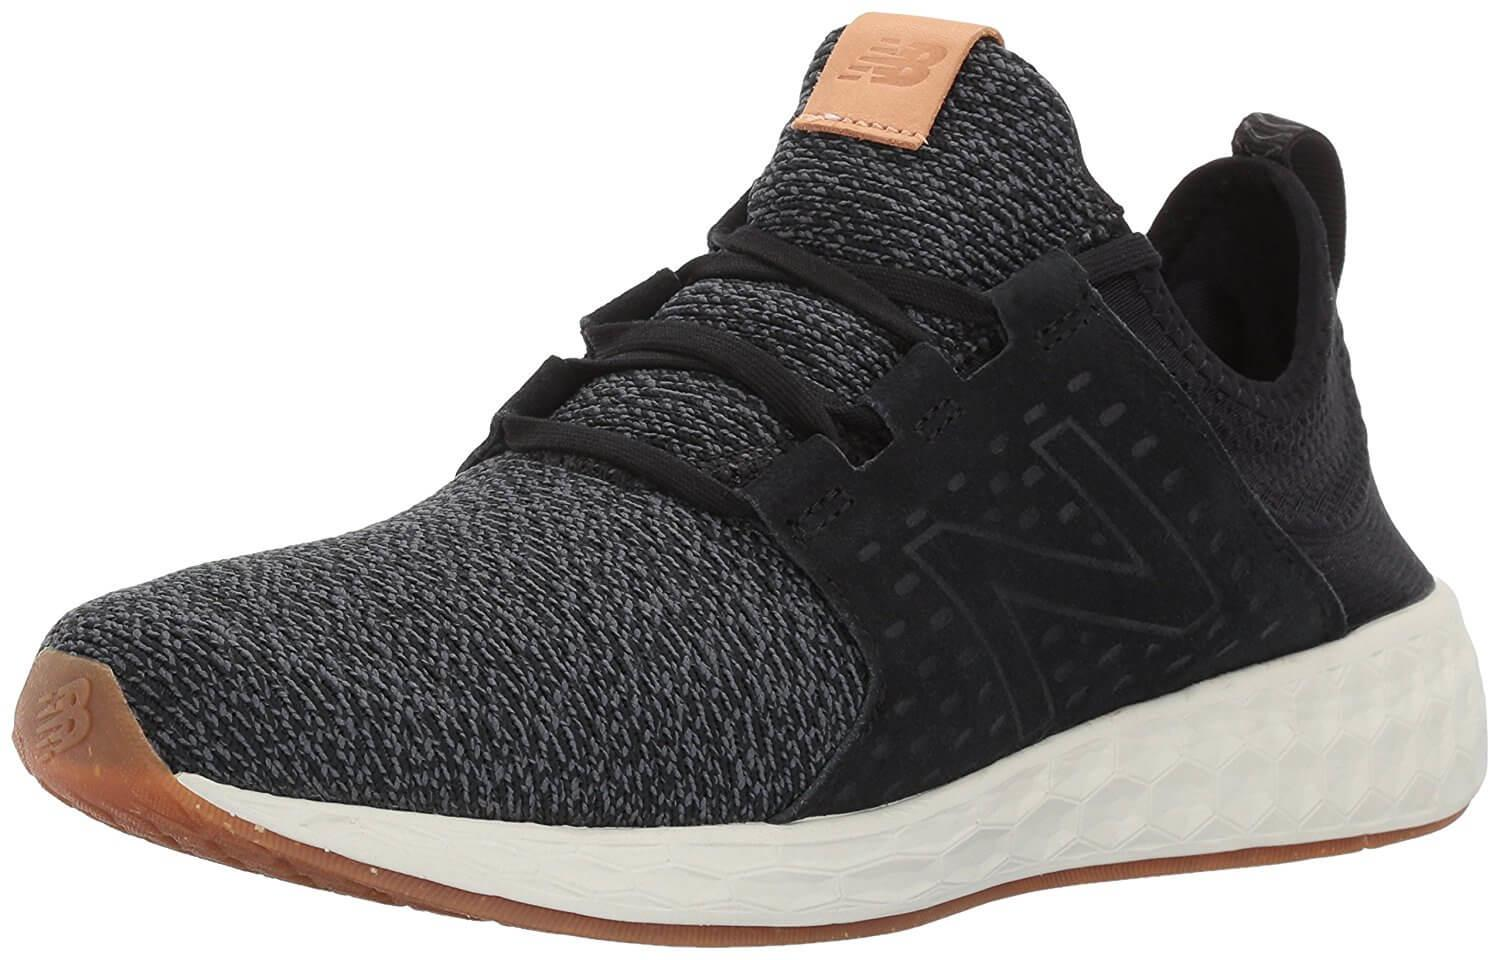 best website 9cc92 aed18 New Balance Fresh Foam Cruz - Buy or Not in July 2019